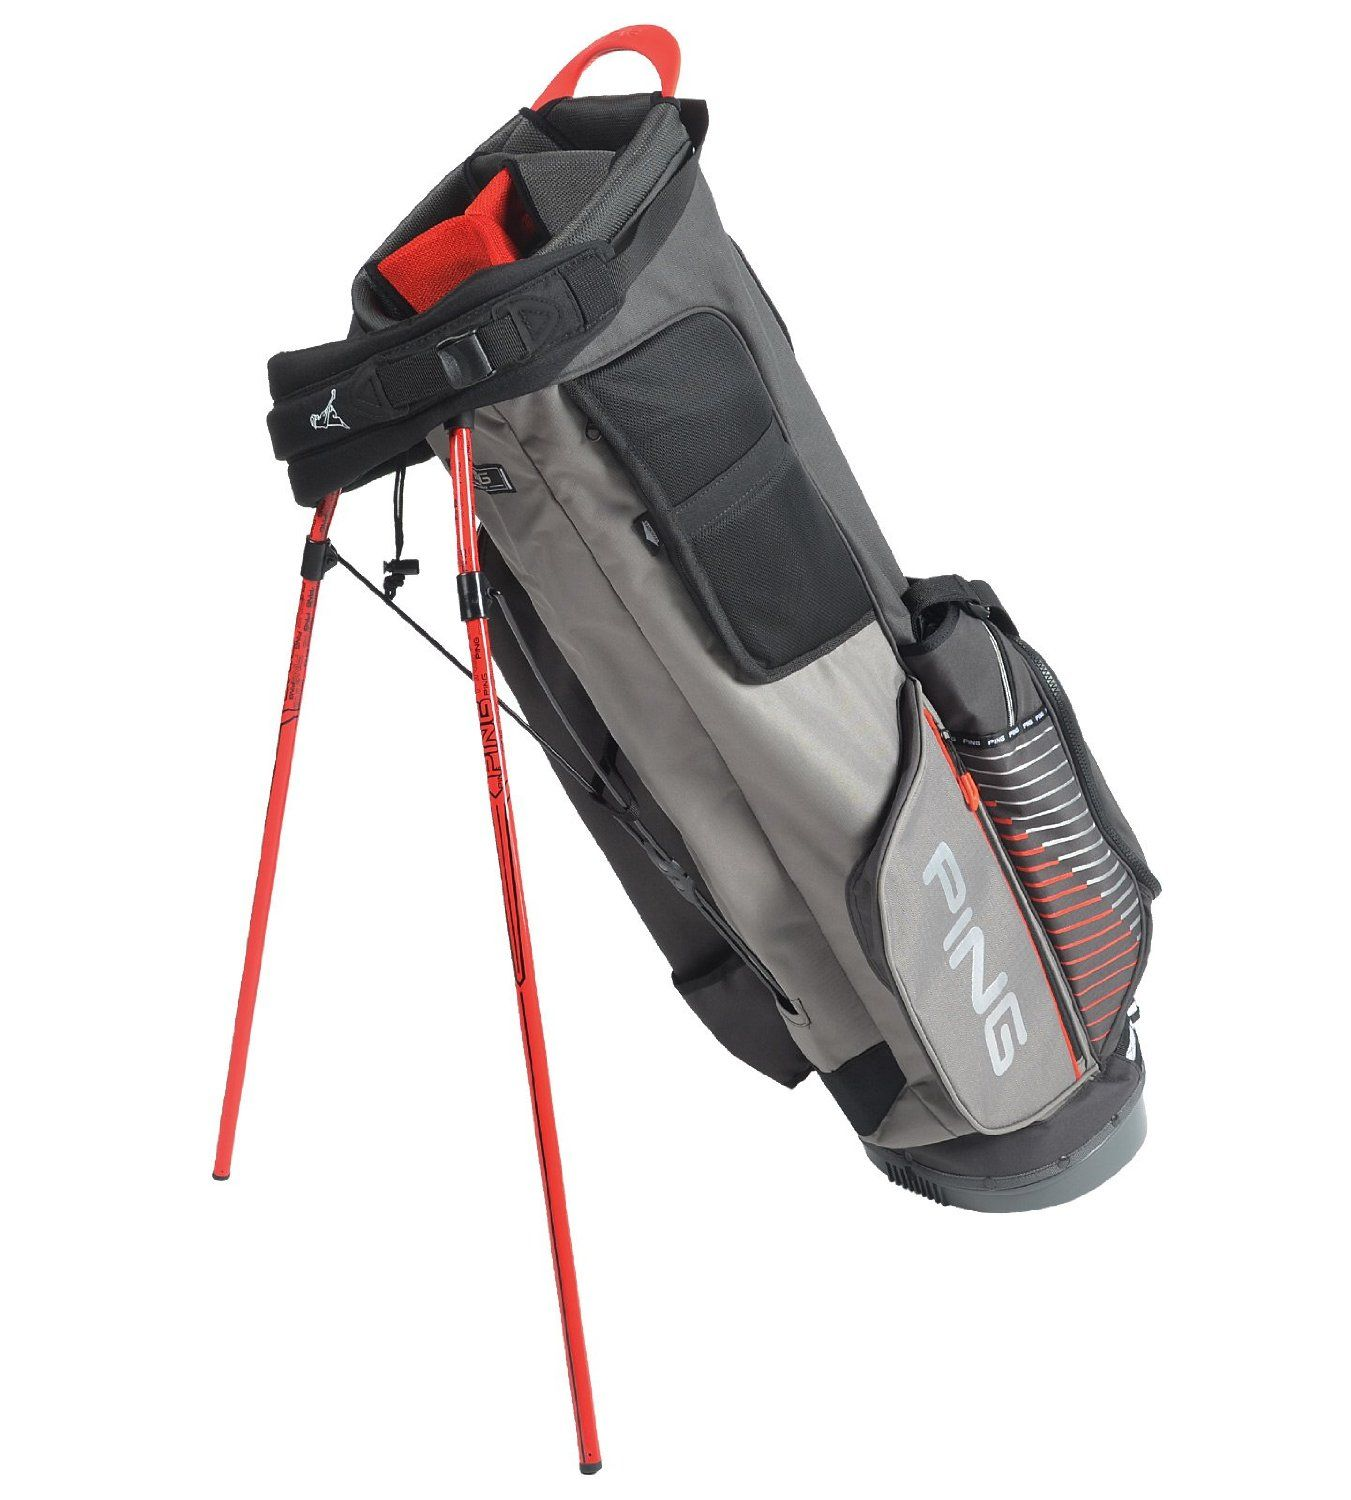 8e8b2c53eb Utilizing easy adjusting sliding shoulder straps these mens 4 series II  golf stand bags by Ping also feature a rain hood and umbrella holder